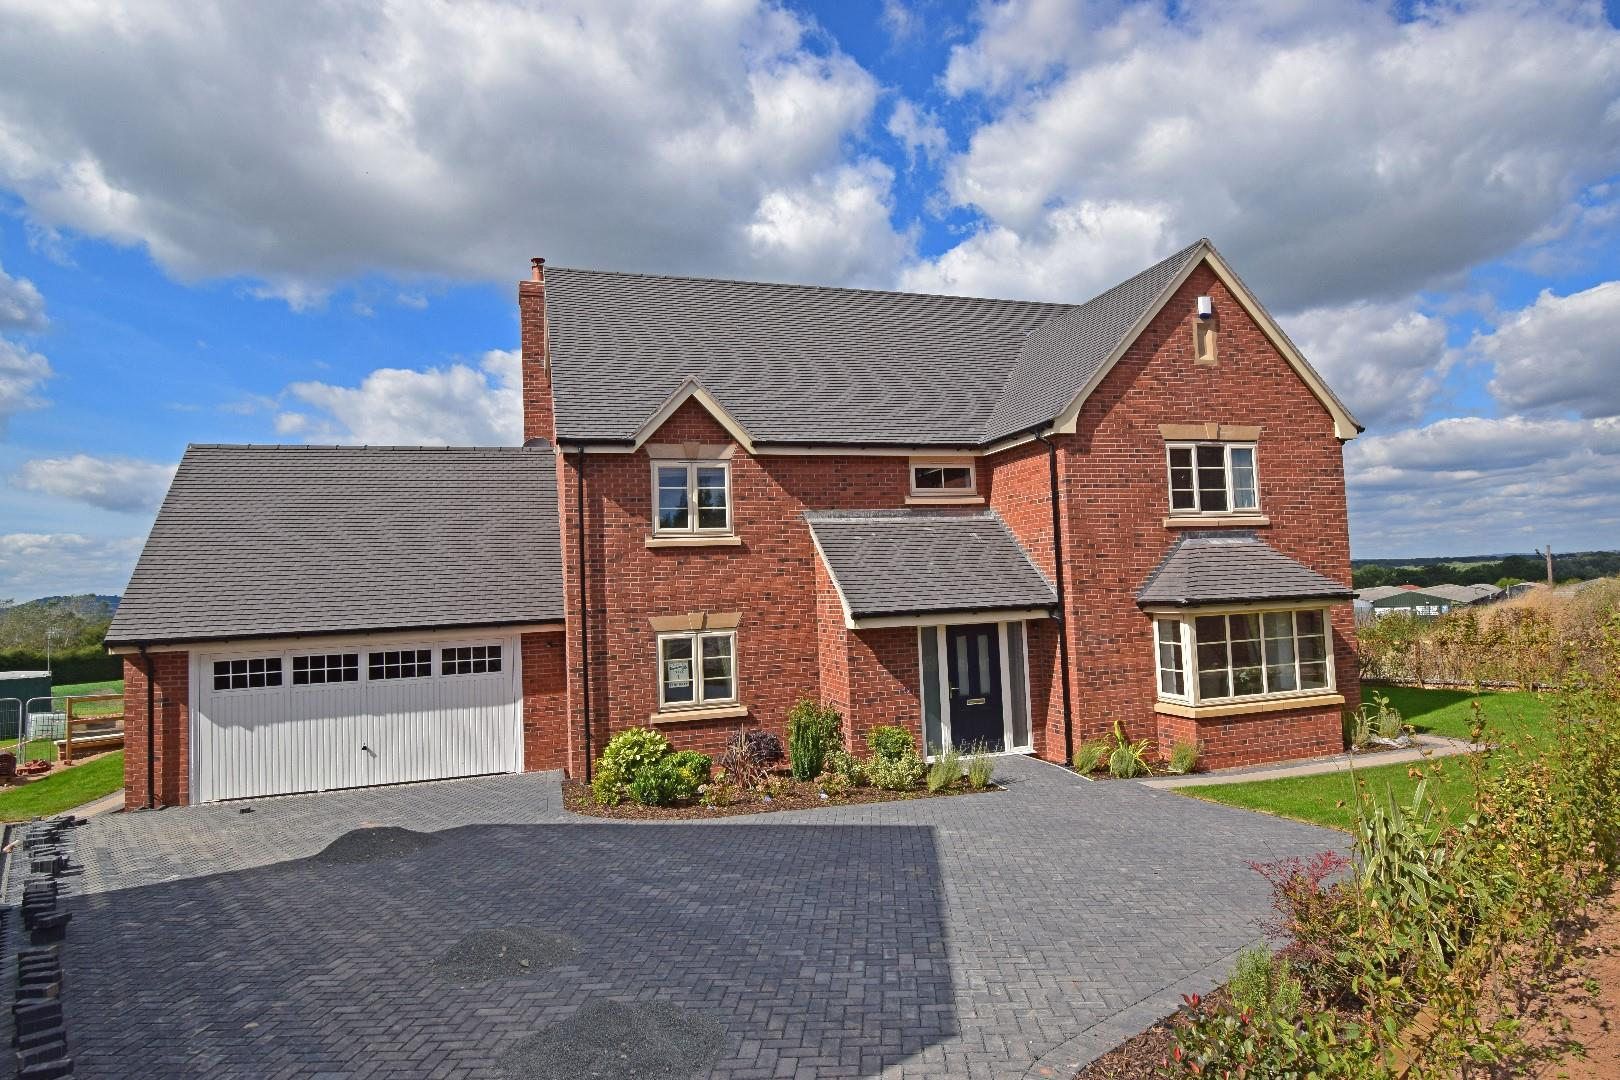 (Plot 1) 5 Peachley Court Close, Lower Broadheath, Worcester, WR2 6SA